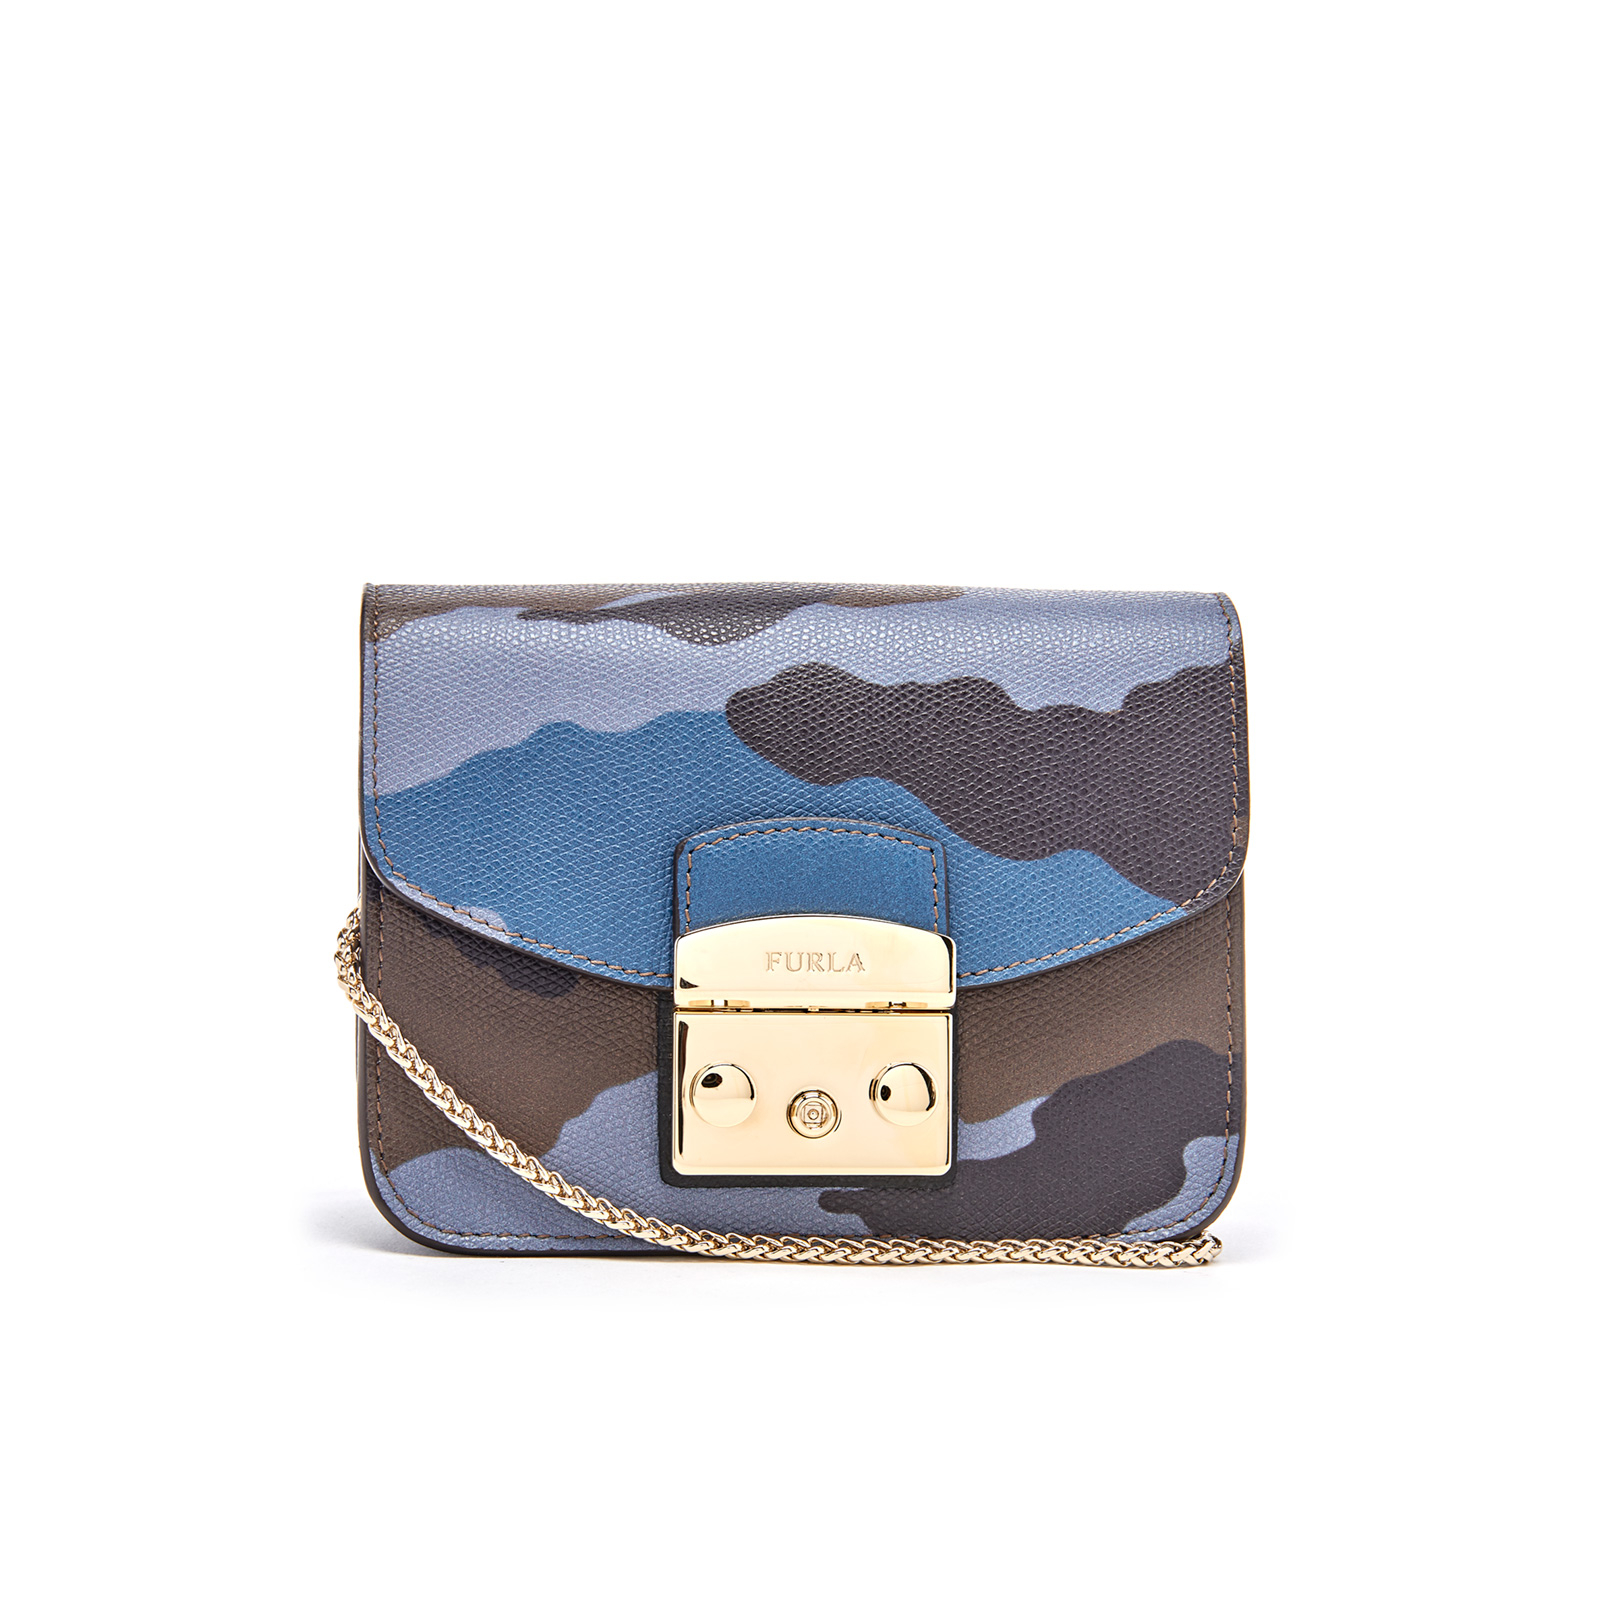 83b80795861b Furla Women s Metropolis Mini Cross Body Bag - Toni Avio and Onyx - Free UK  Delivery over £50